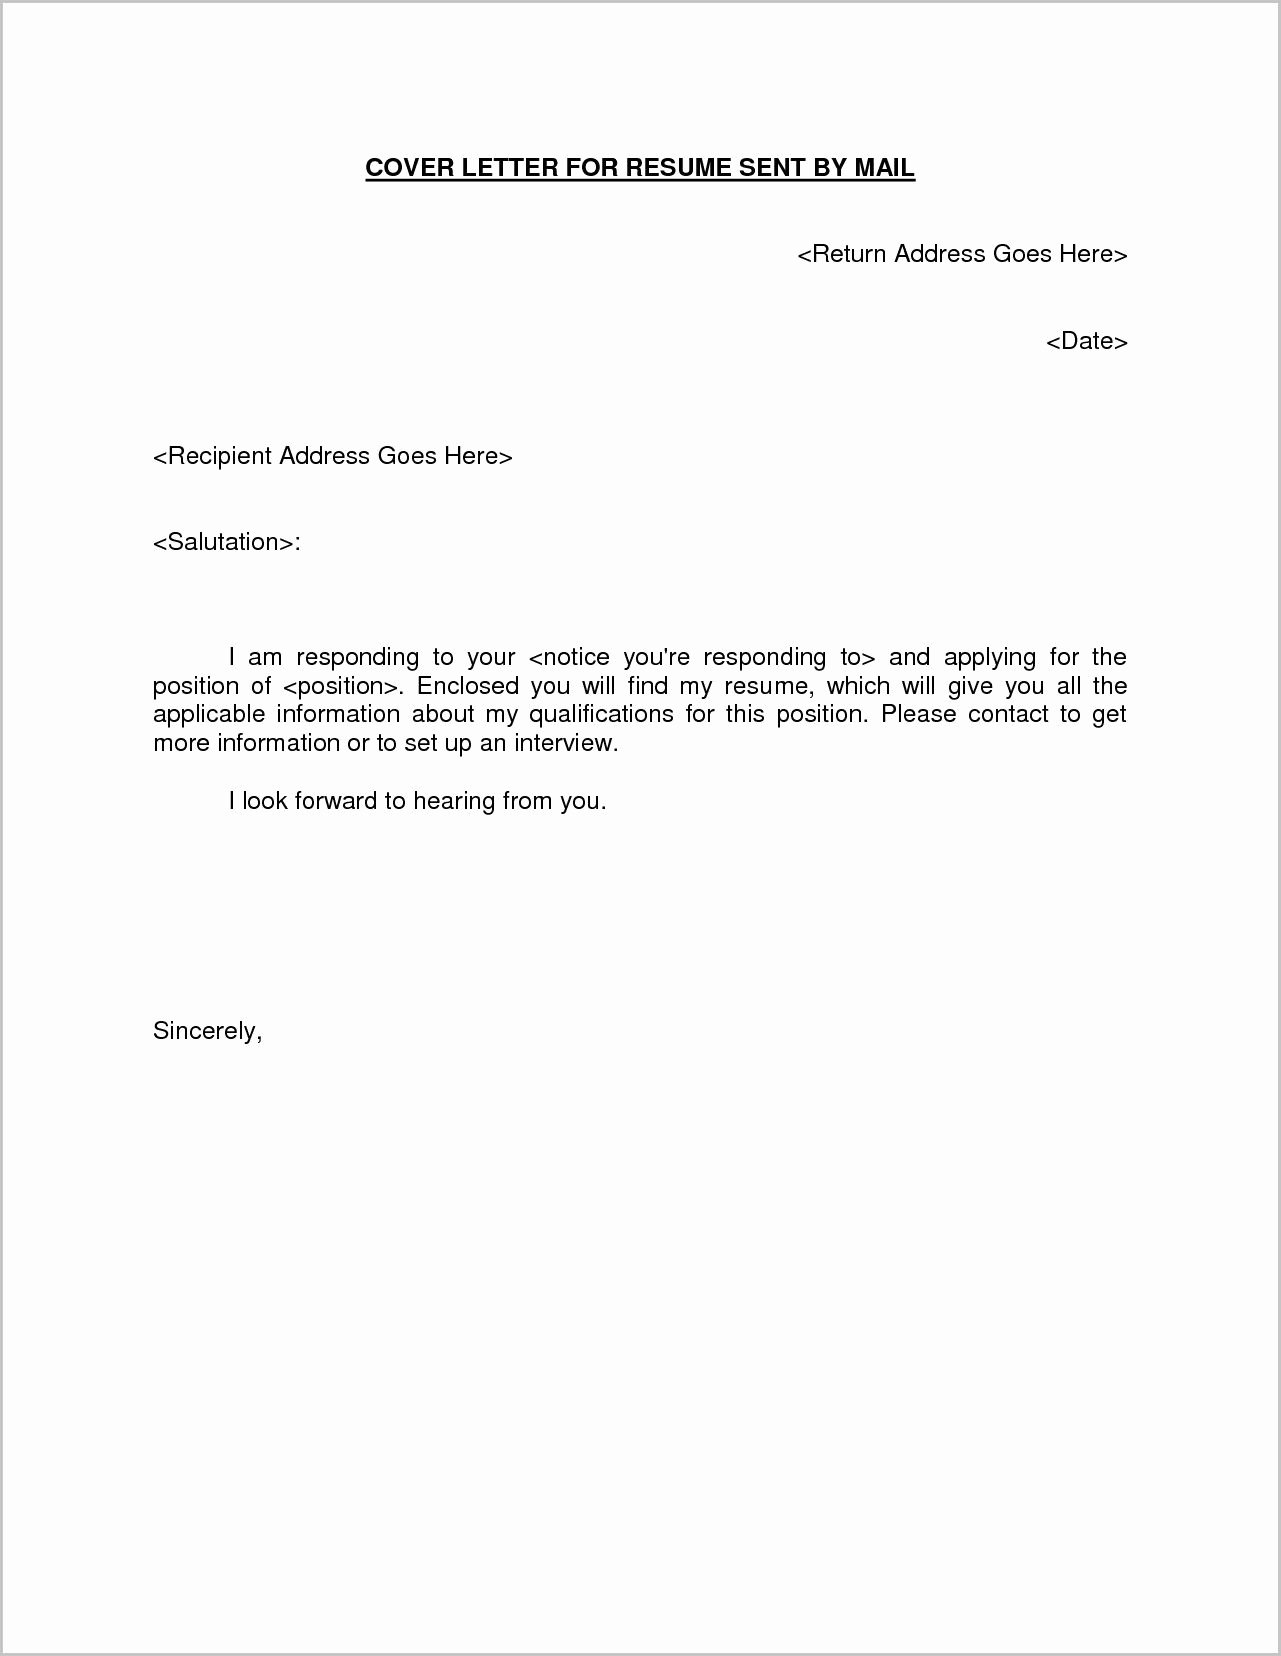 Email Cover Letter Templates Elegant 25 Email Cover Letter Sample Email Cover Letter Sample